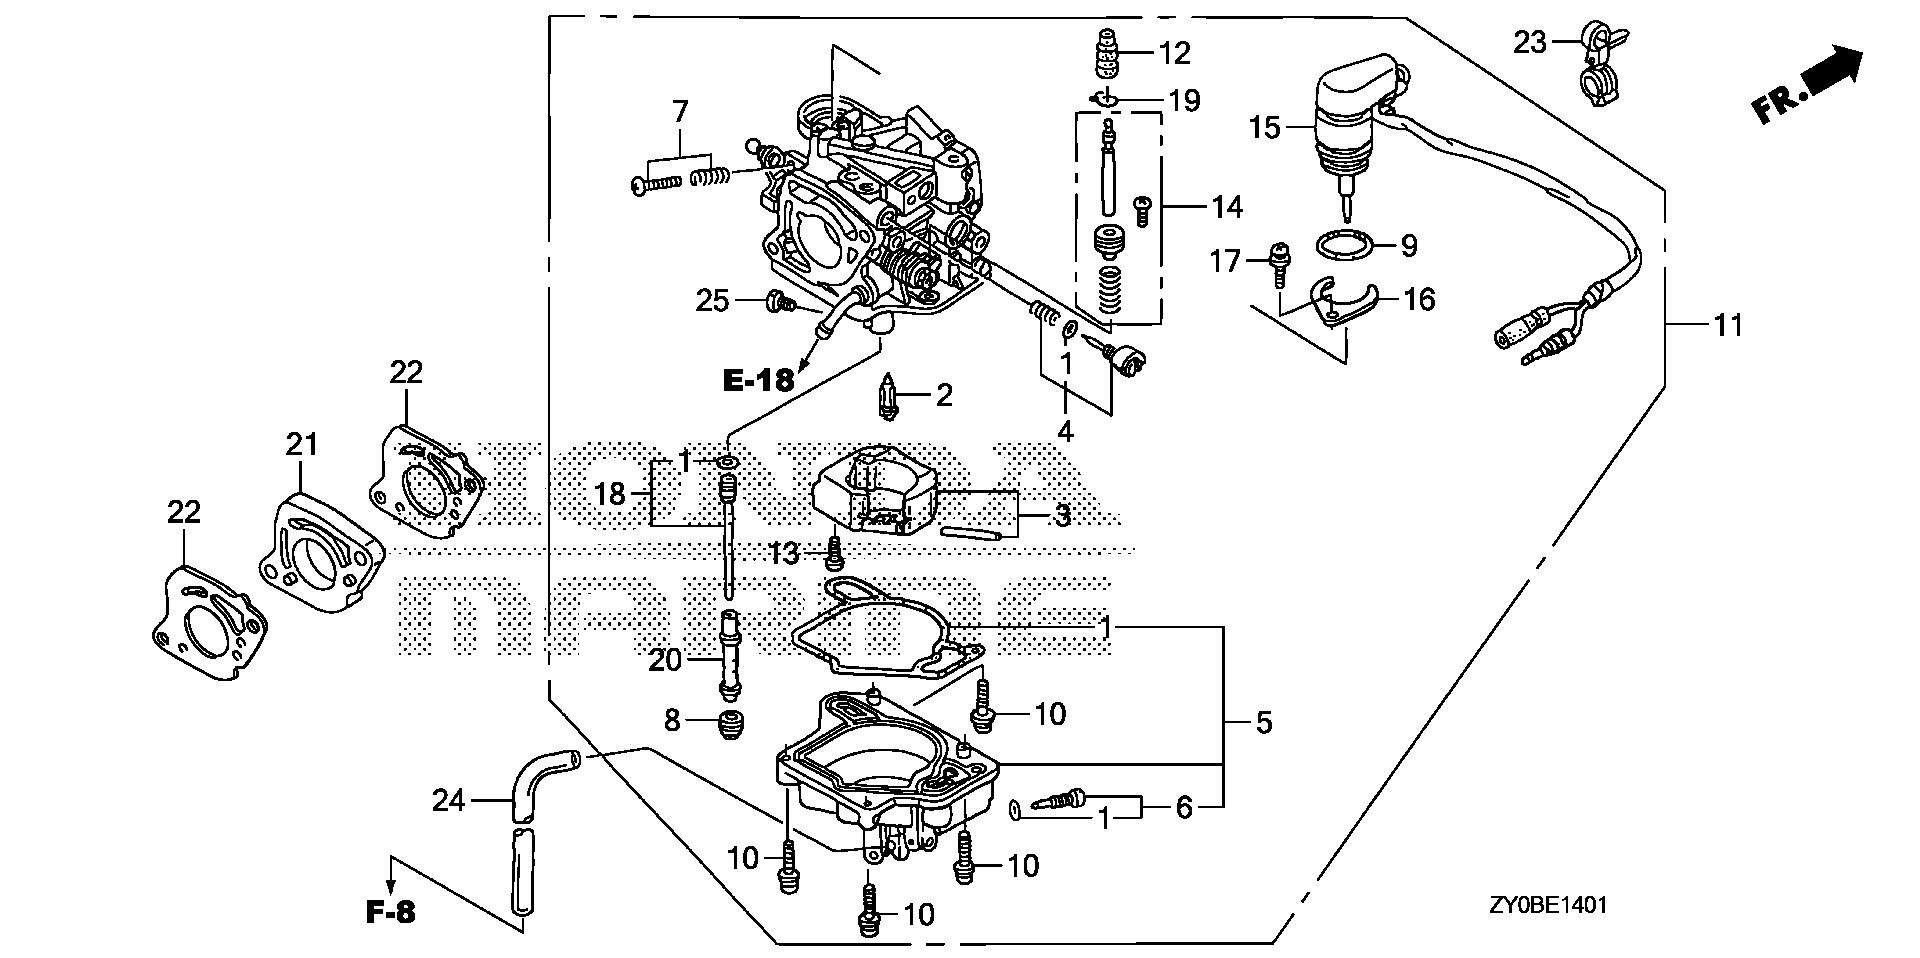 9 Hp Honda Engine Wiring Diagram Library 55 Chrysler Outboard Carburetor Auto Marine Parts